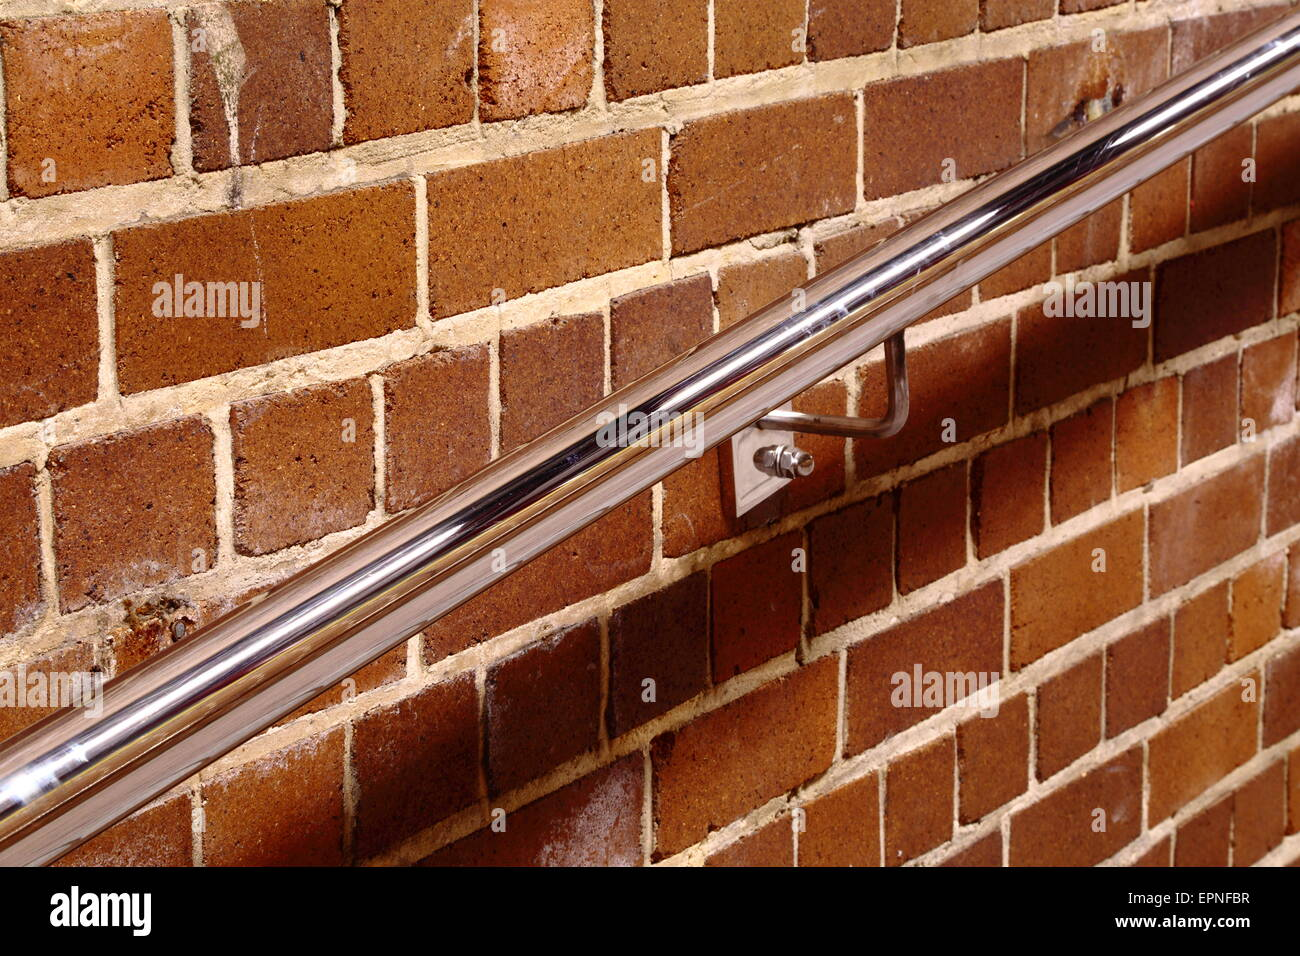 A stainless-steel handrail at Katoomba Railway Station in Katoomba - the Blue Mountains of NSW, Australia - Stock Image